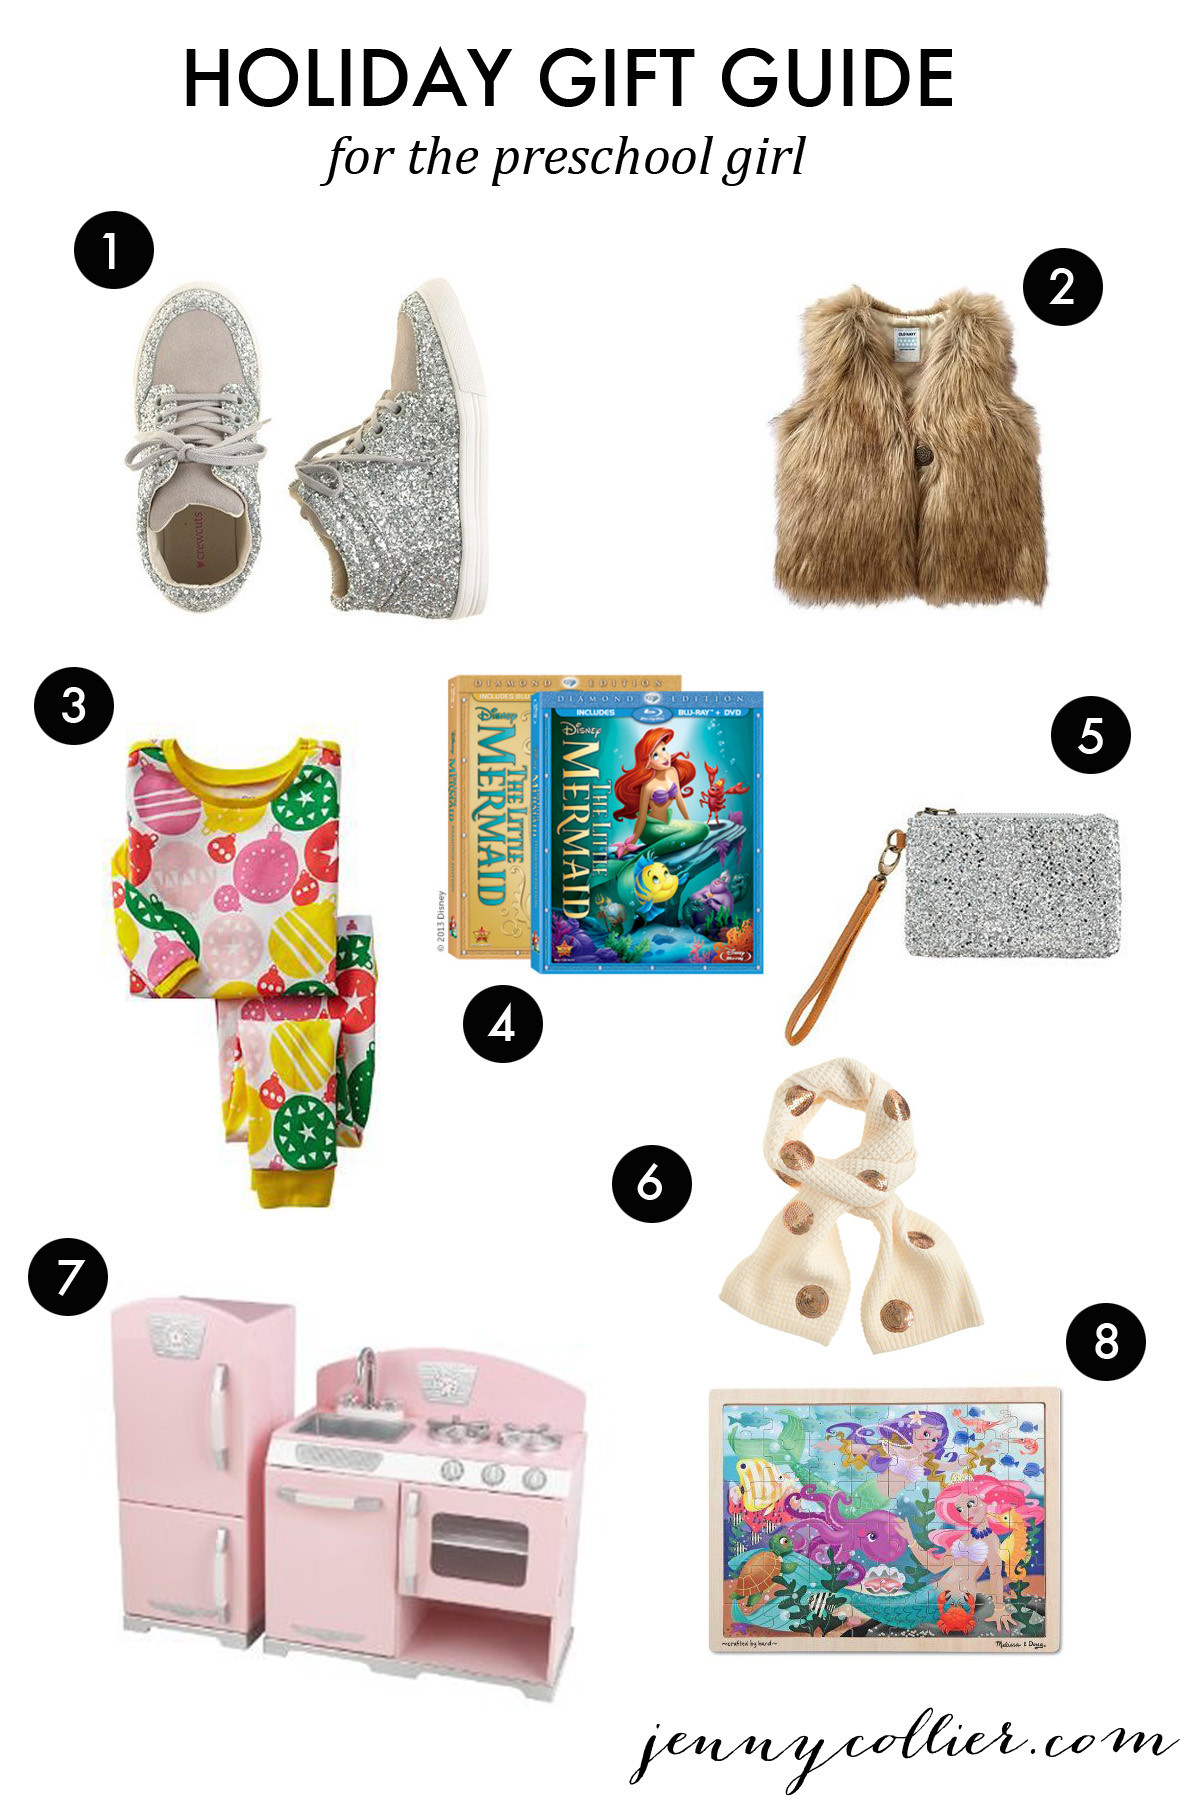 Best Gift Ideas For Girls  Holiday Gift Ideas for Girls jenny collier blog